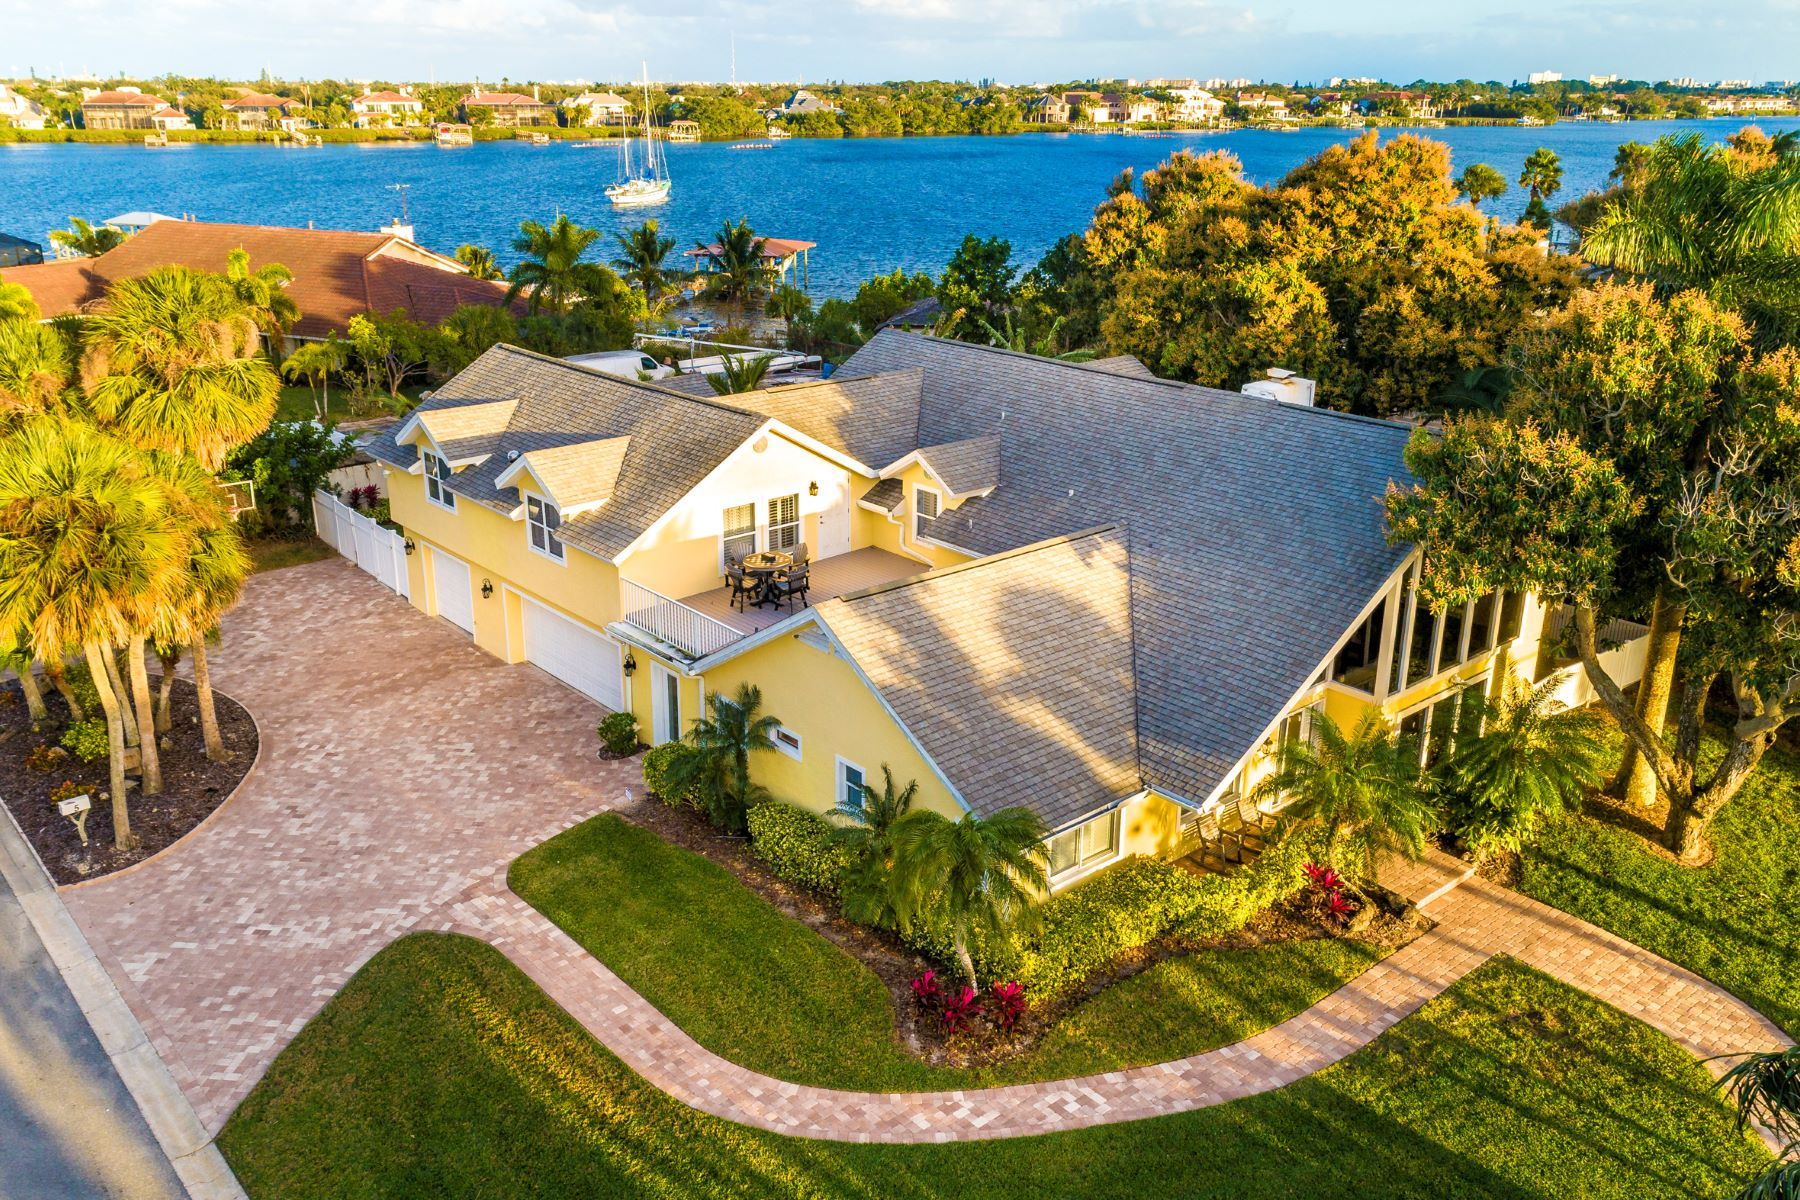 Single Family Homes for Sale at Incredible Riverfront Pool Home 5 Windjammer Point Merritt Island, Florida 32952 United States